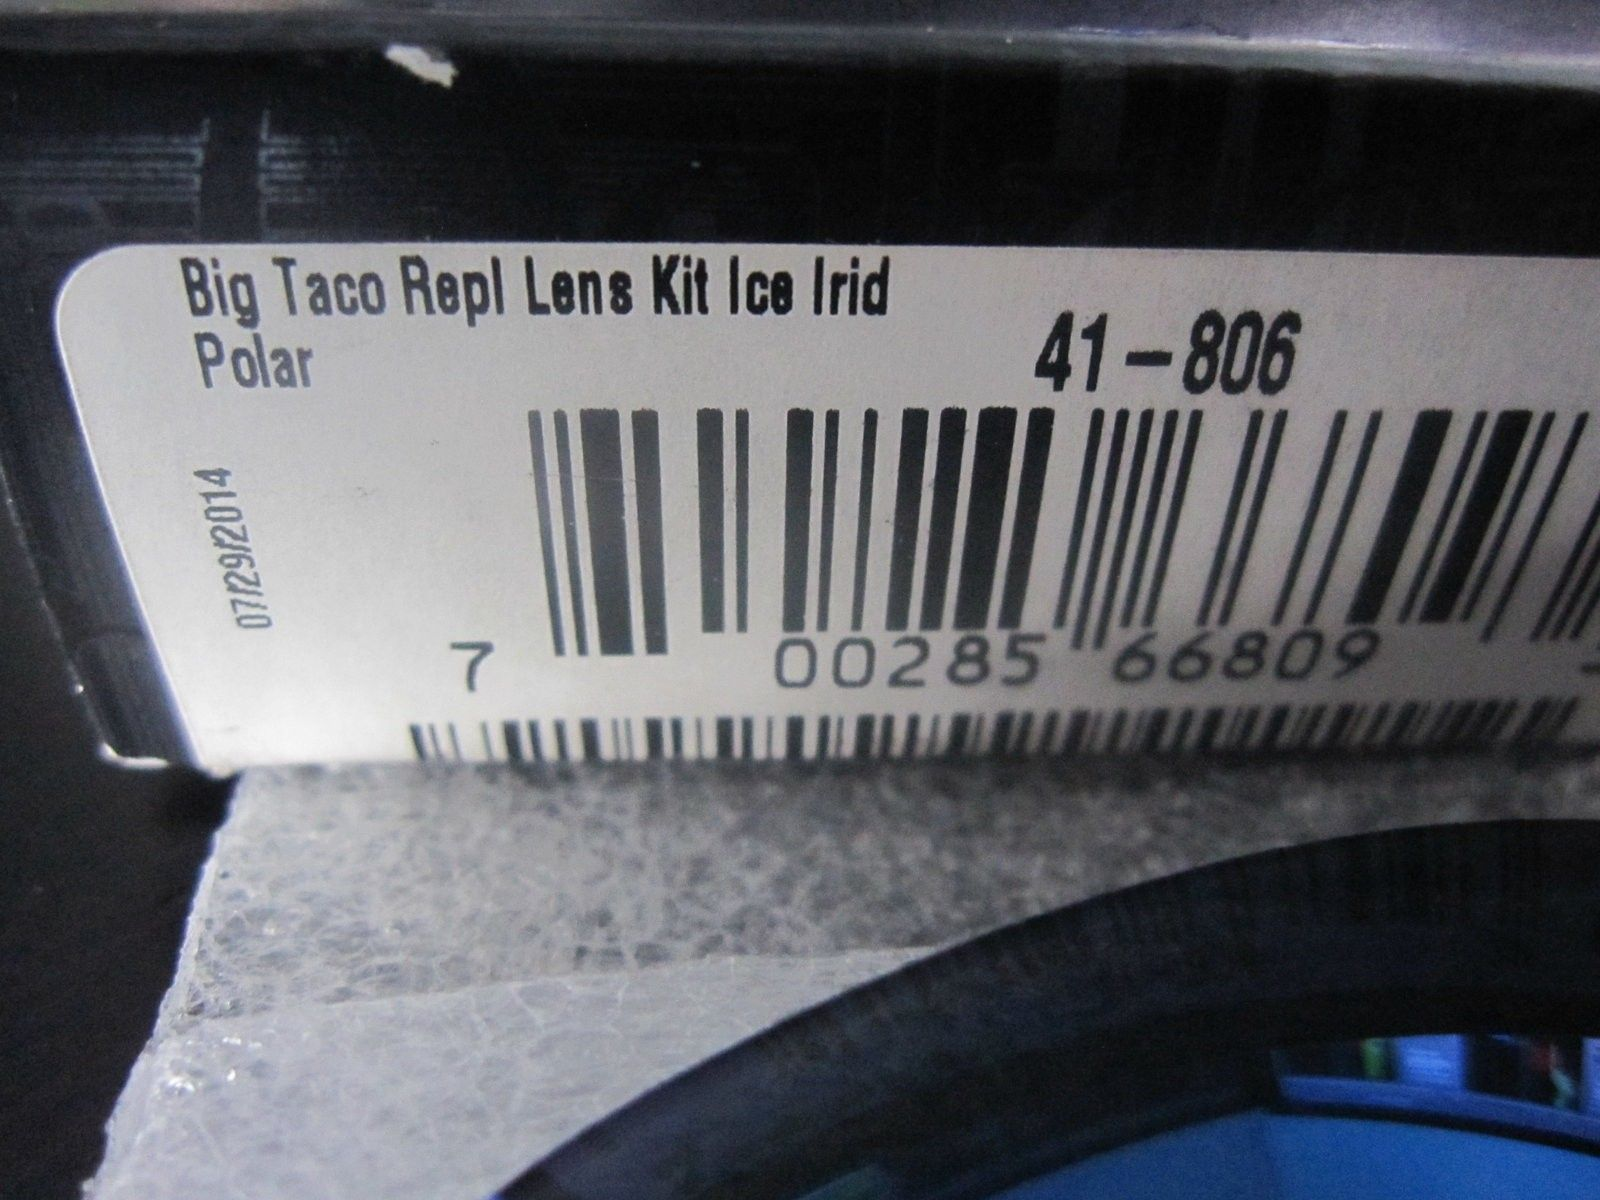 BNIB Big Taco Ice Polarized lenses - SKU 41-806 - Donors for X-Metals - IMG_5447.JPG